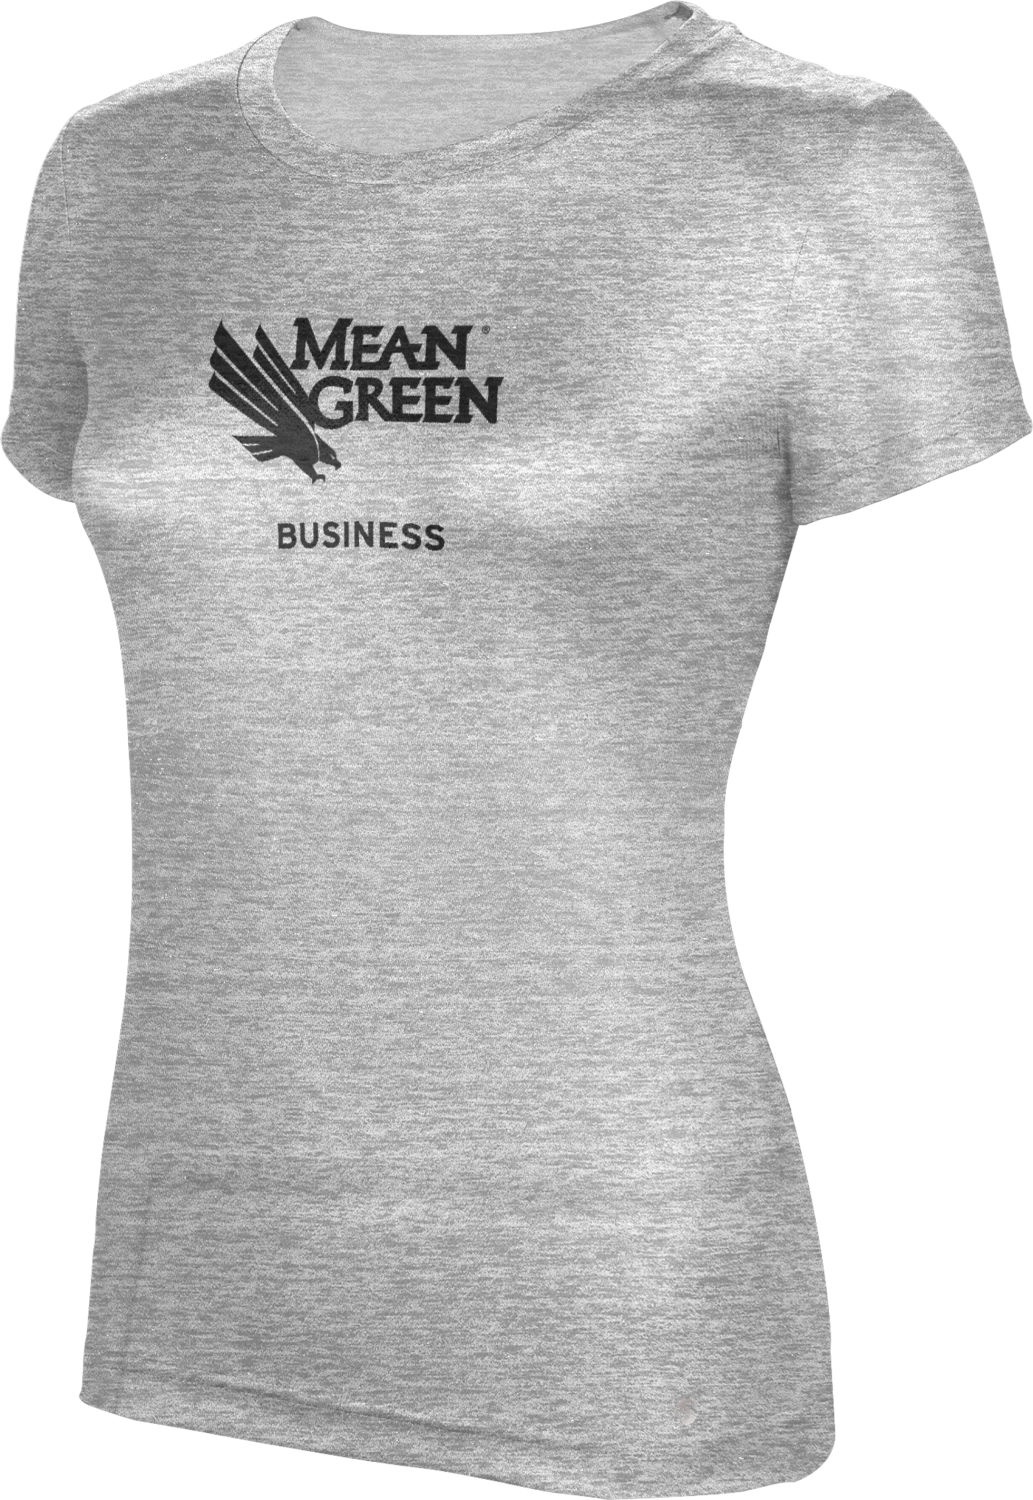 ProSphere Business Women's TriBlend Distressed Tee